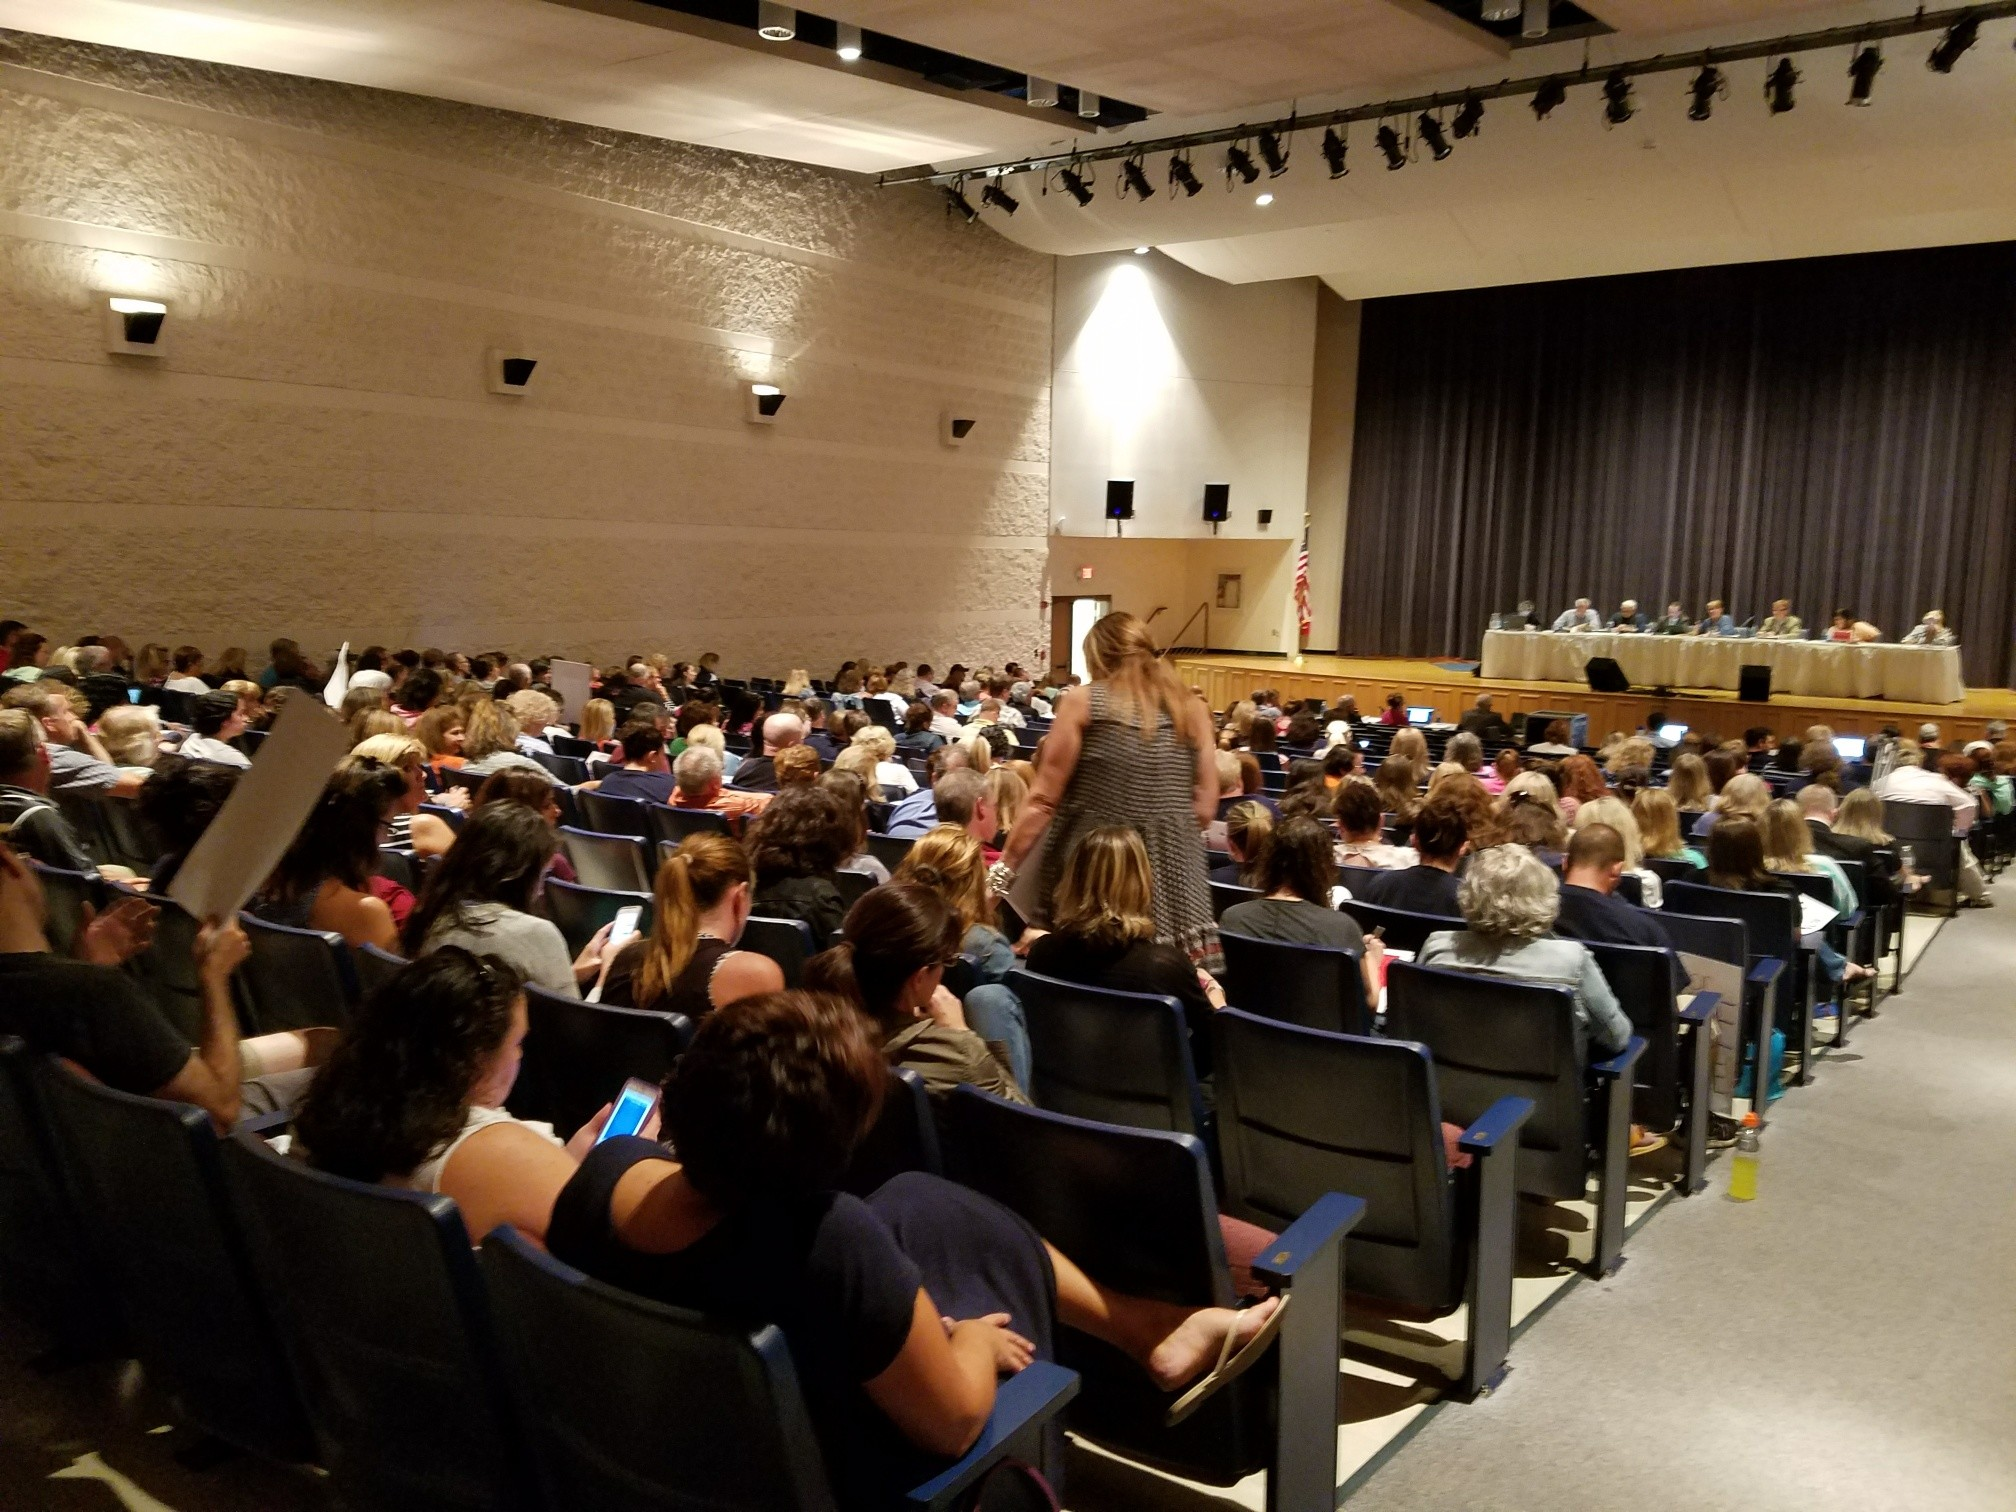 FULL HOUSE: A nearly full Toll Gate High School auditorium was the stage for a night full of emotional pleas and angry public comments.